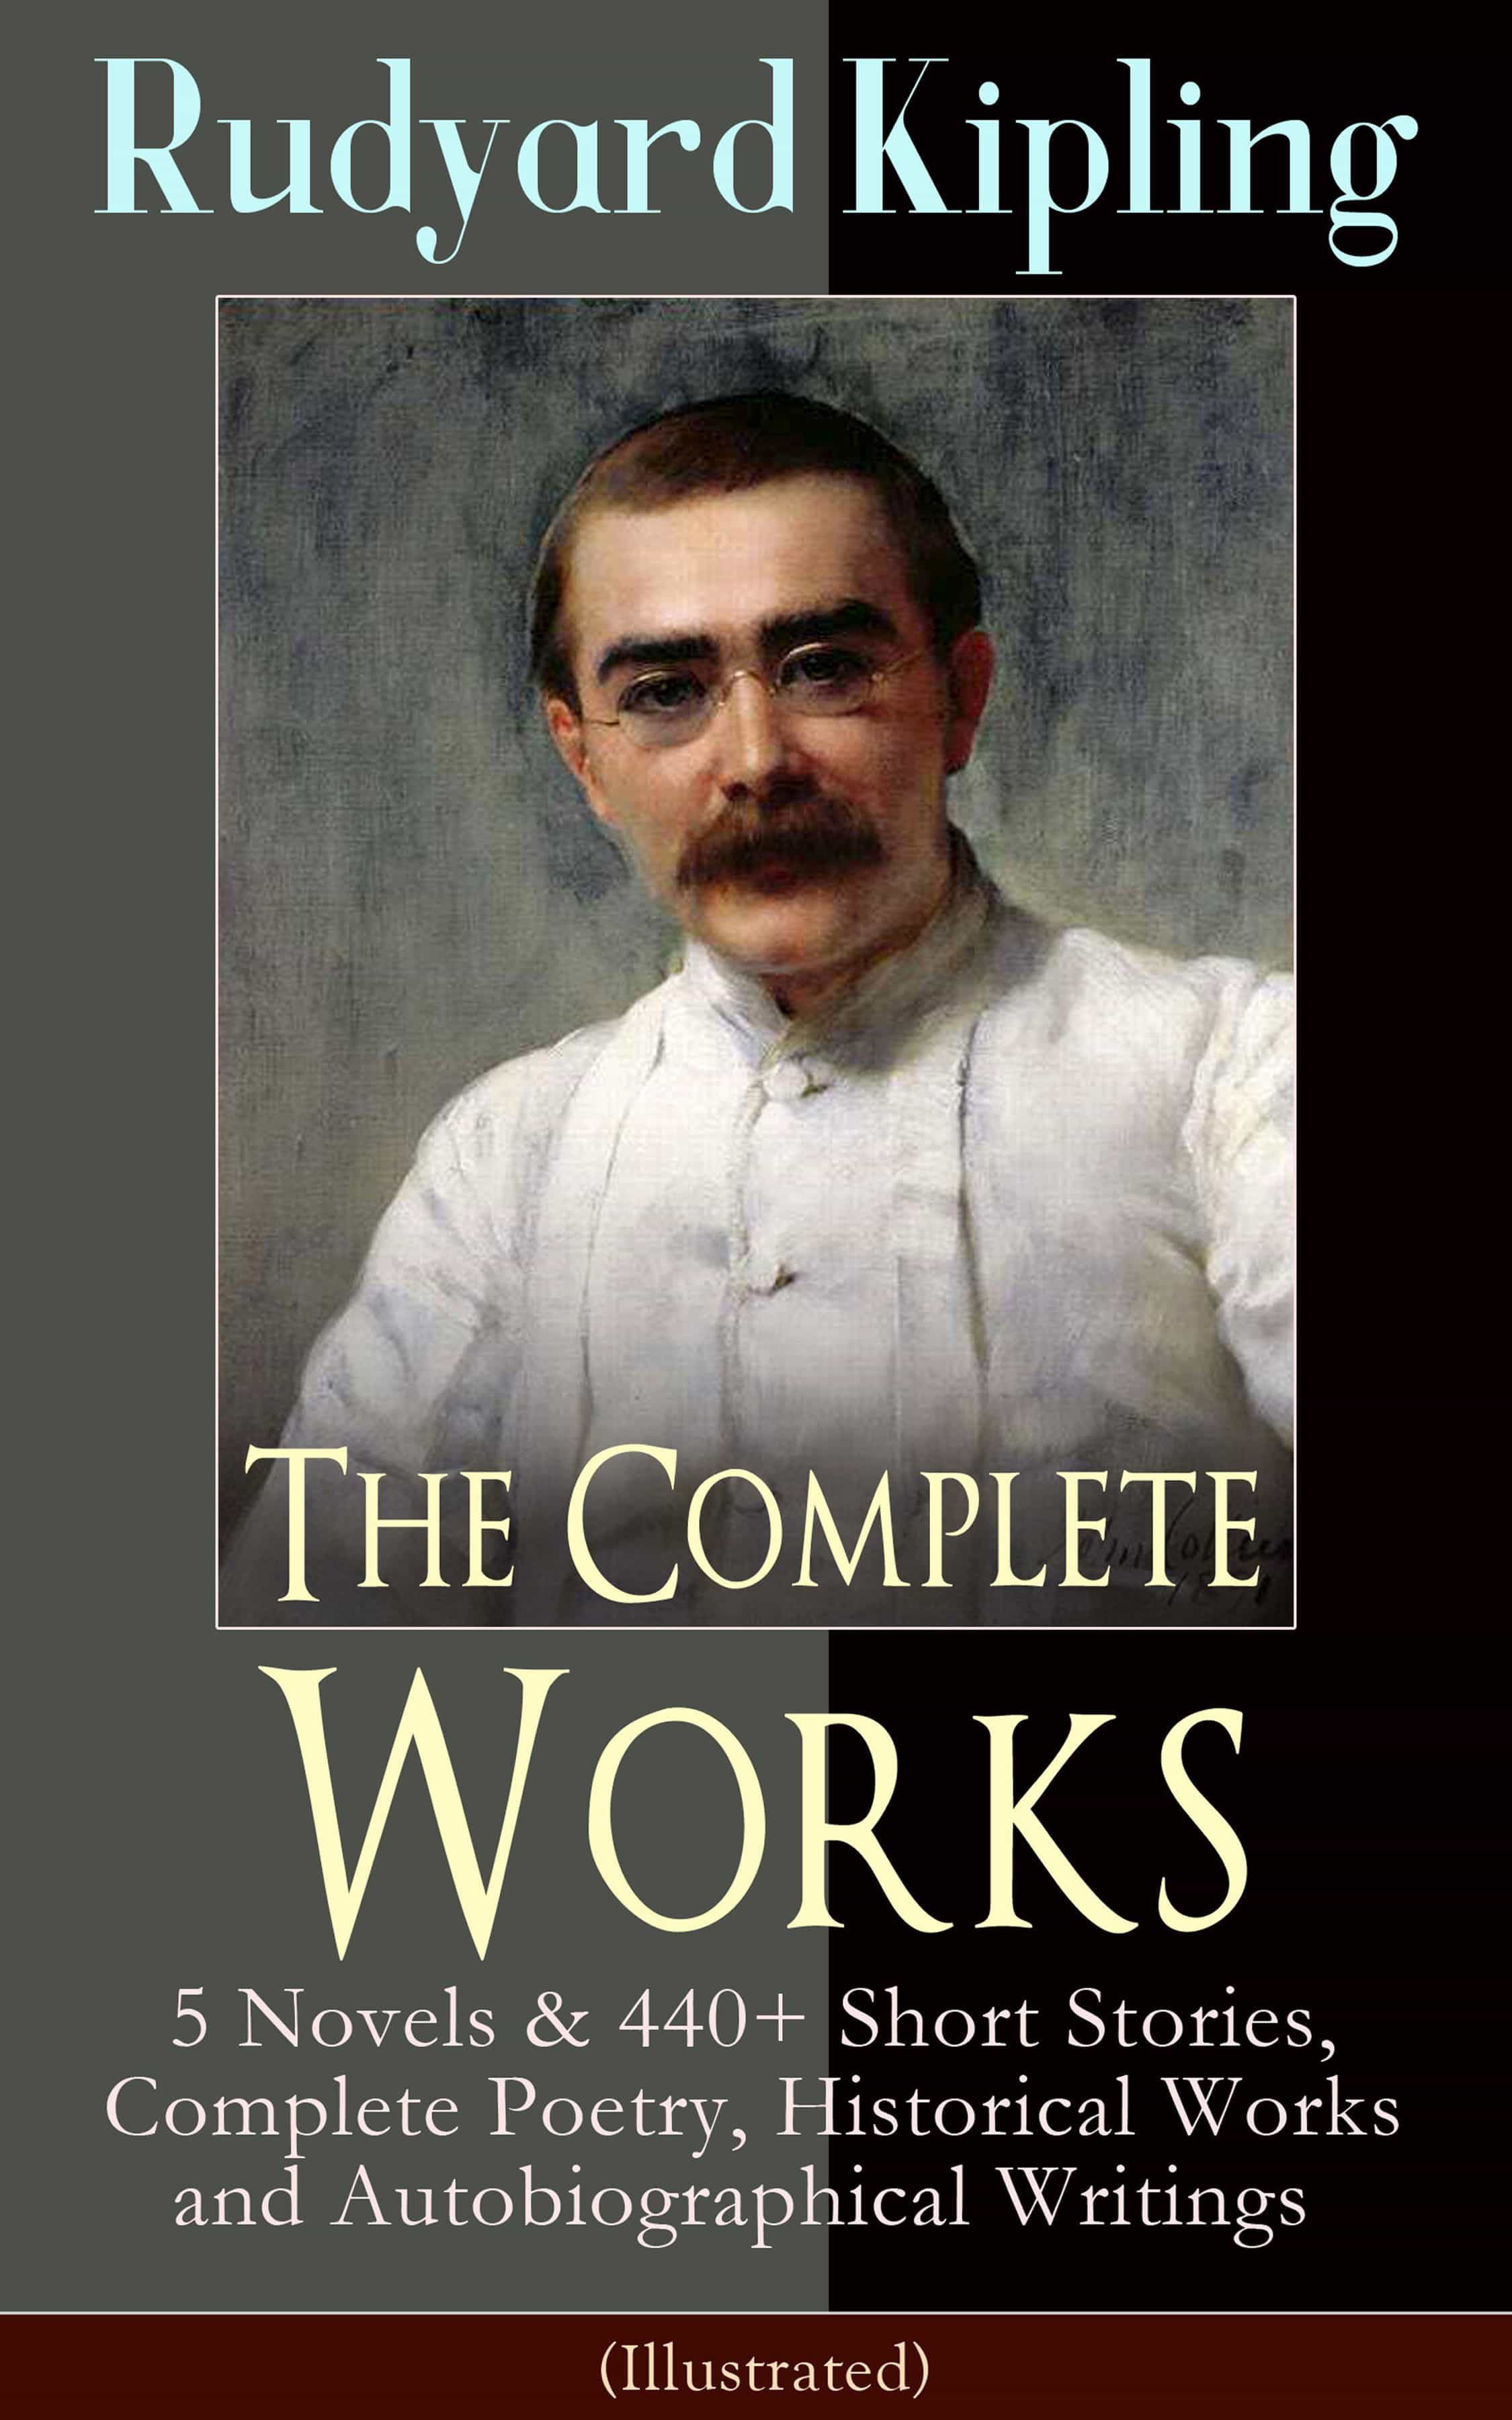 cf9a98136 The Complete Works Of Rudyard Kipling: 5 Novels & 440+ Short Stories,  Complete Poetry, Historical Works And Autobiographical Writings  (Illustrated) (ebook) ...